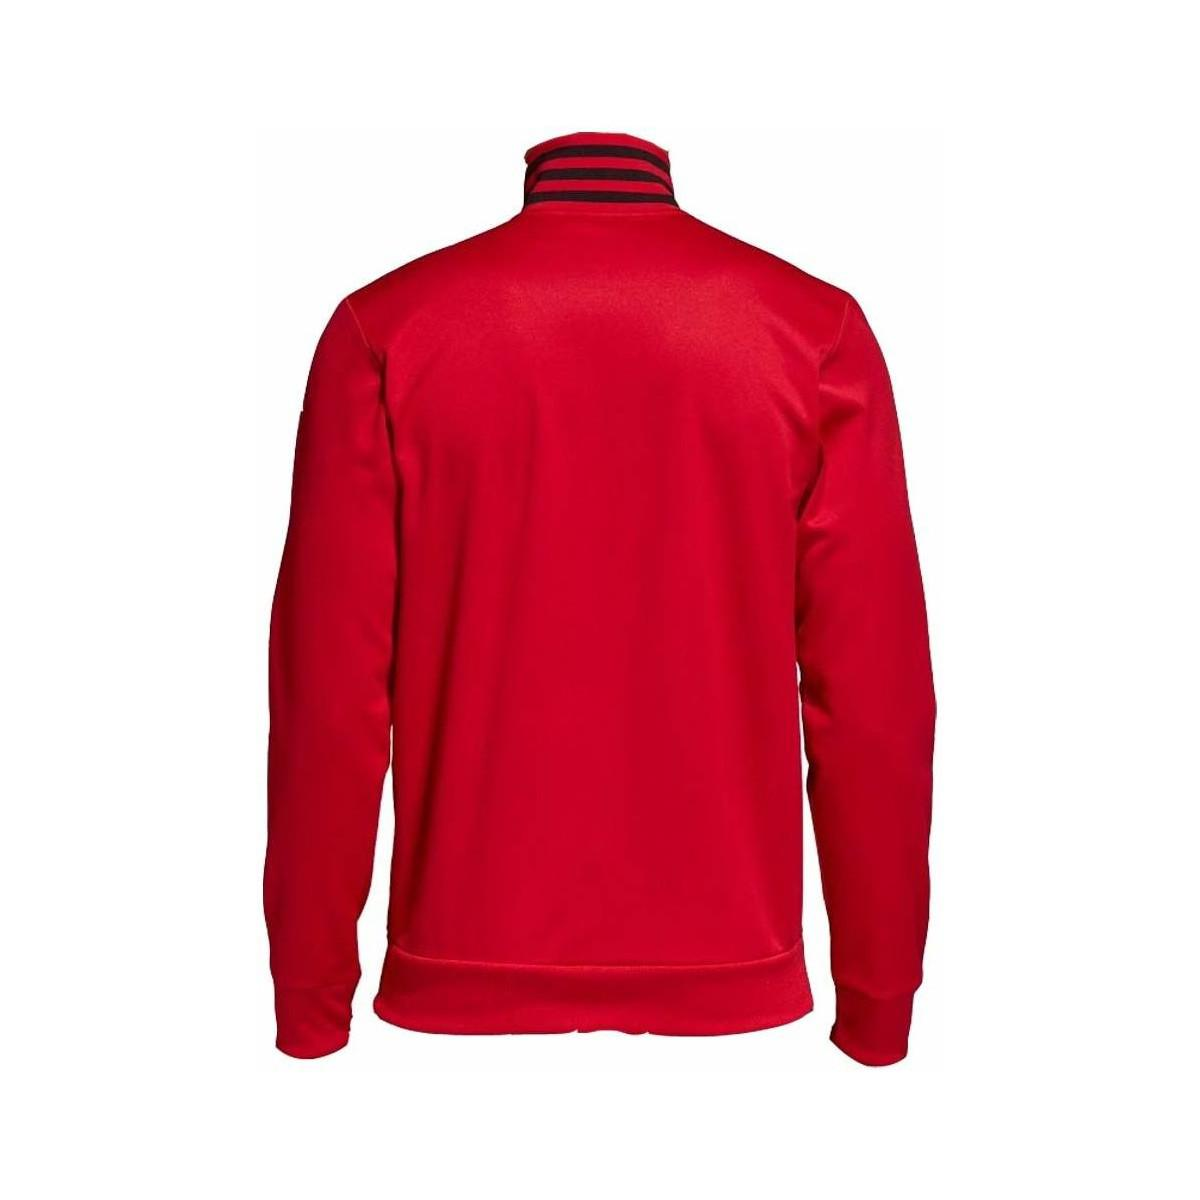 b16186bf2452d adidas 2018-2019 Man Utd 3s Track Top Men's Tracksuit Jacket In Red ...